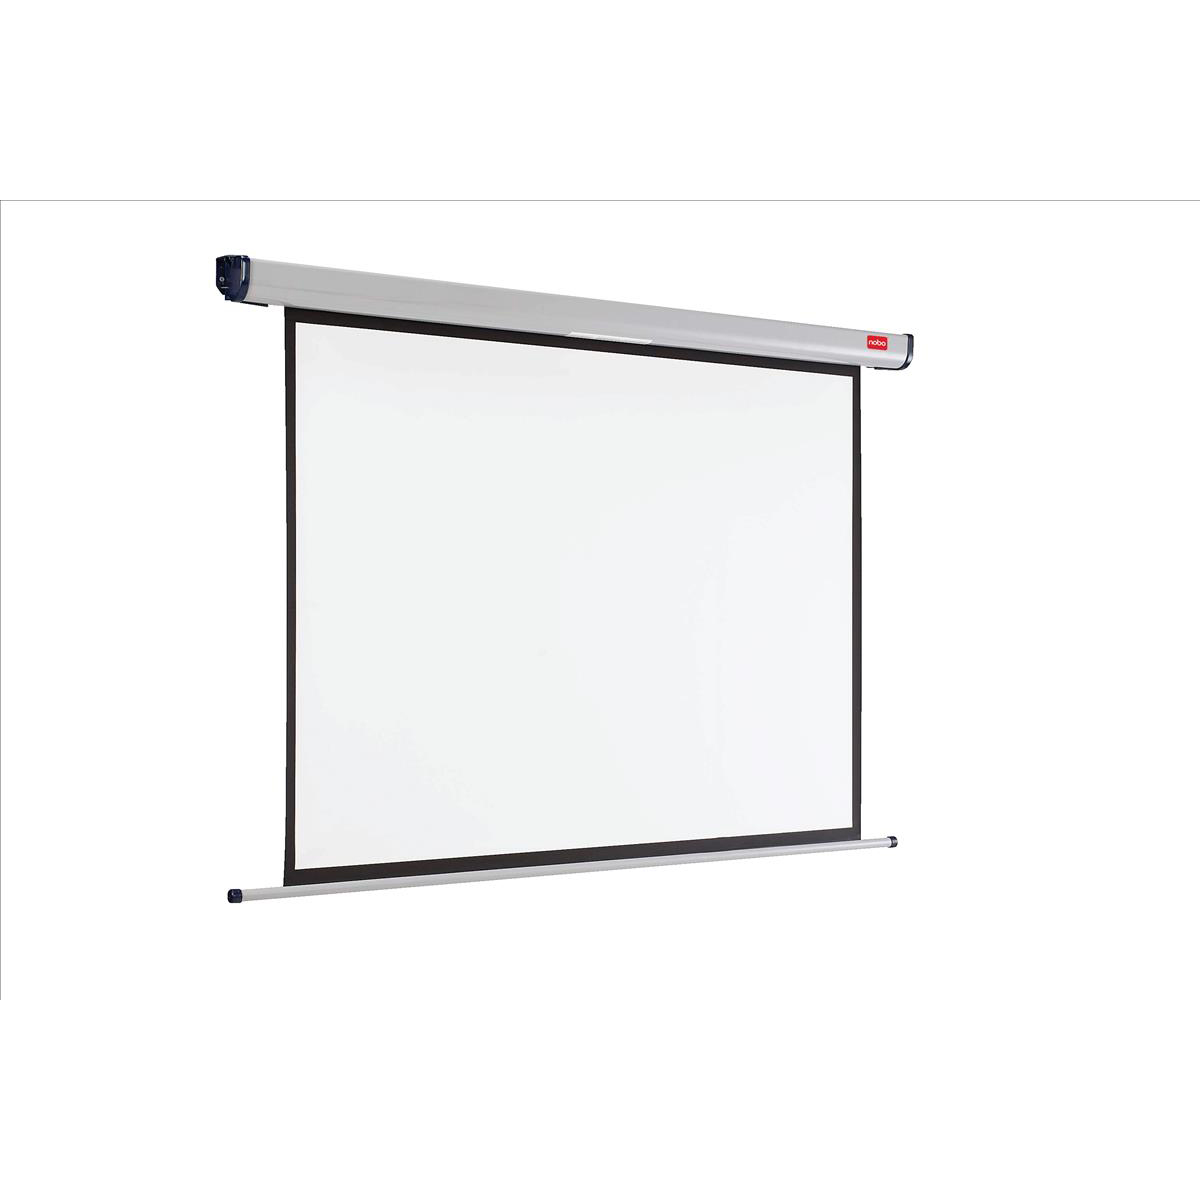 Projection screens Nobo Wall Widescreen Projection Screen W2400xH1600 Ref 1902394W